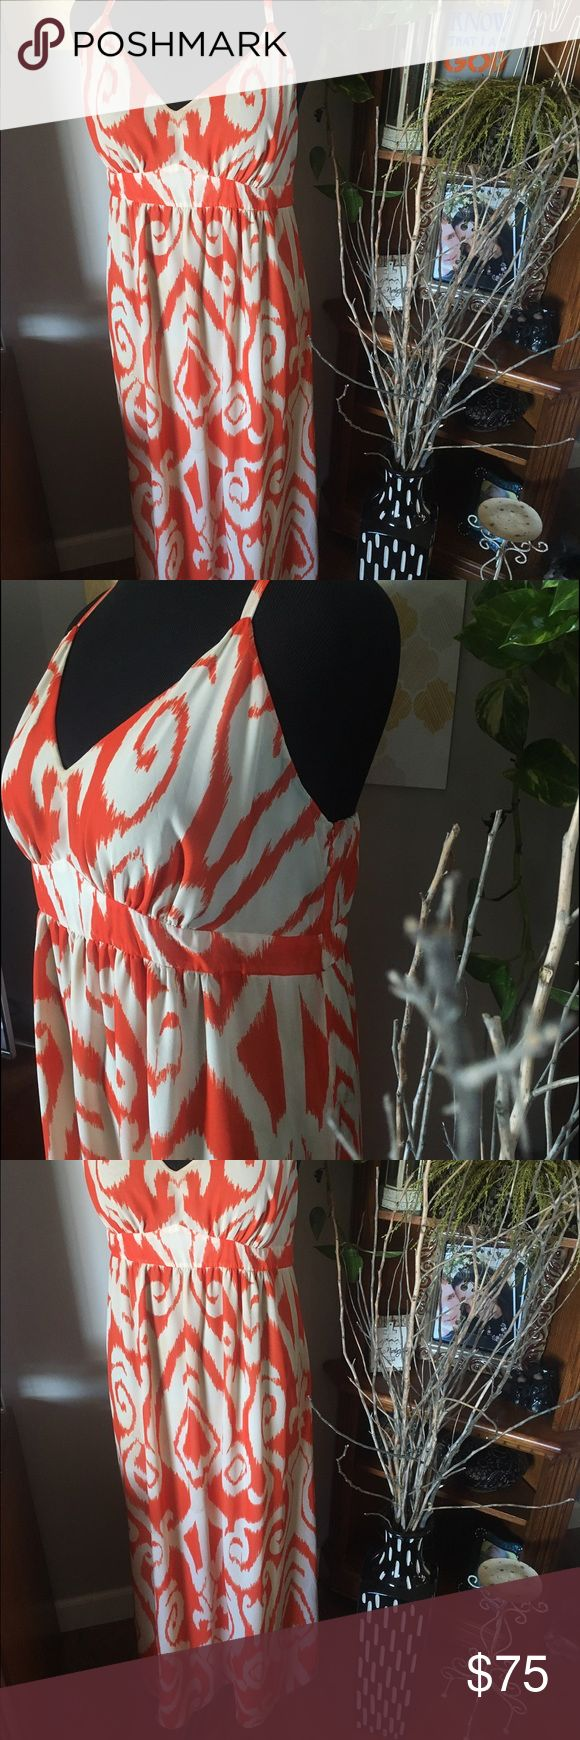 Chiffon Swirl Maxi Orange and White swirl maxi. Gorgeous, effortless style. Adjustable straps. Empire waist flatter as your curves effortlessly. Size 16, but fits my 18/20 frame. Reference: my bra size is 40DD and there's a little room to spare with my large butt/hips. So if your chest isn't any bigger than mine a 18/20 dress size could easily rock this just as much as a size 16! No tags, only worn and washed once. INC International Concepts Dresses Maxi